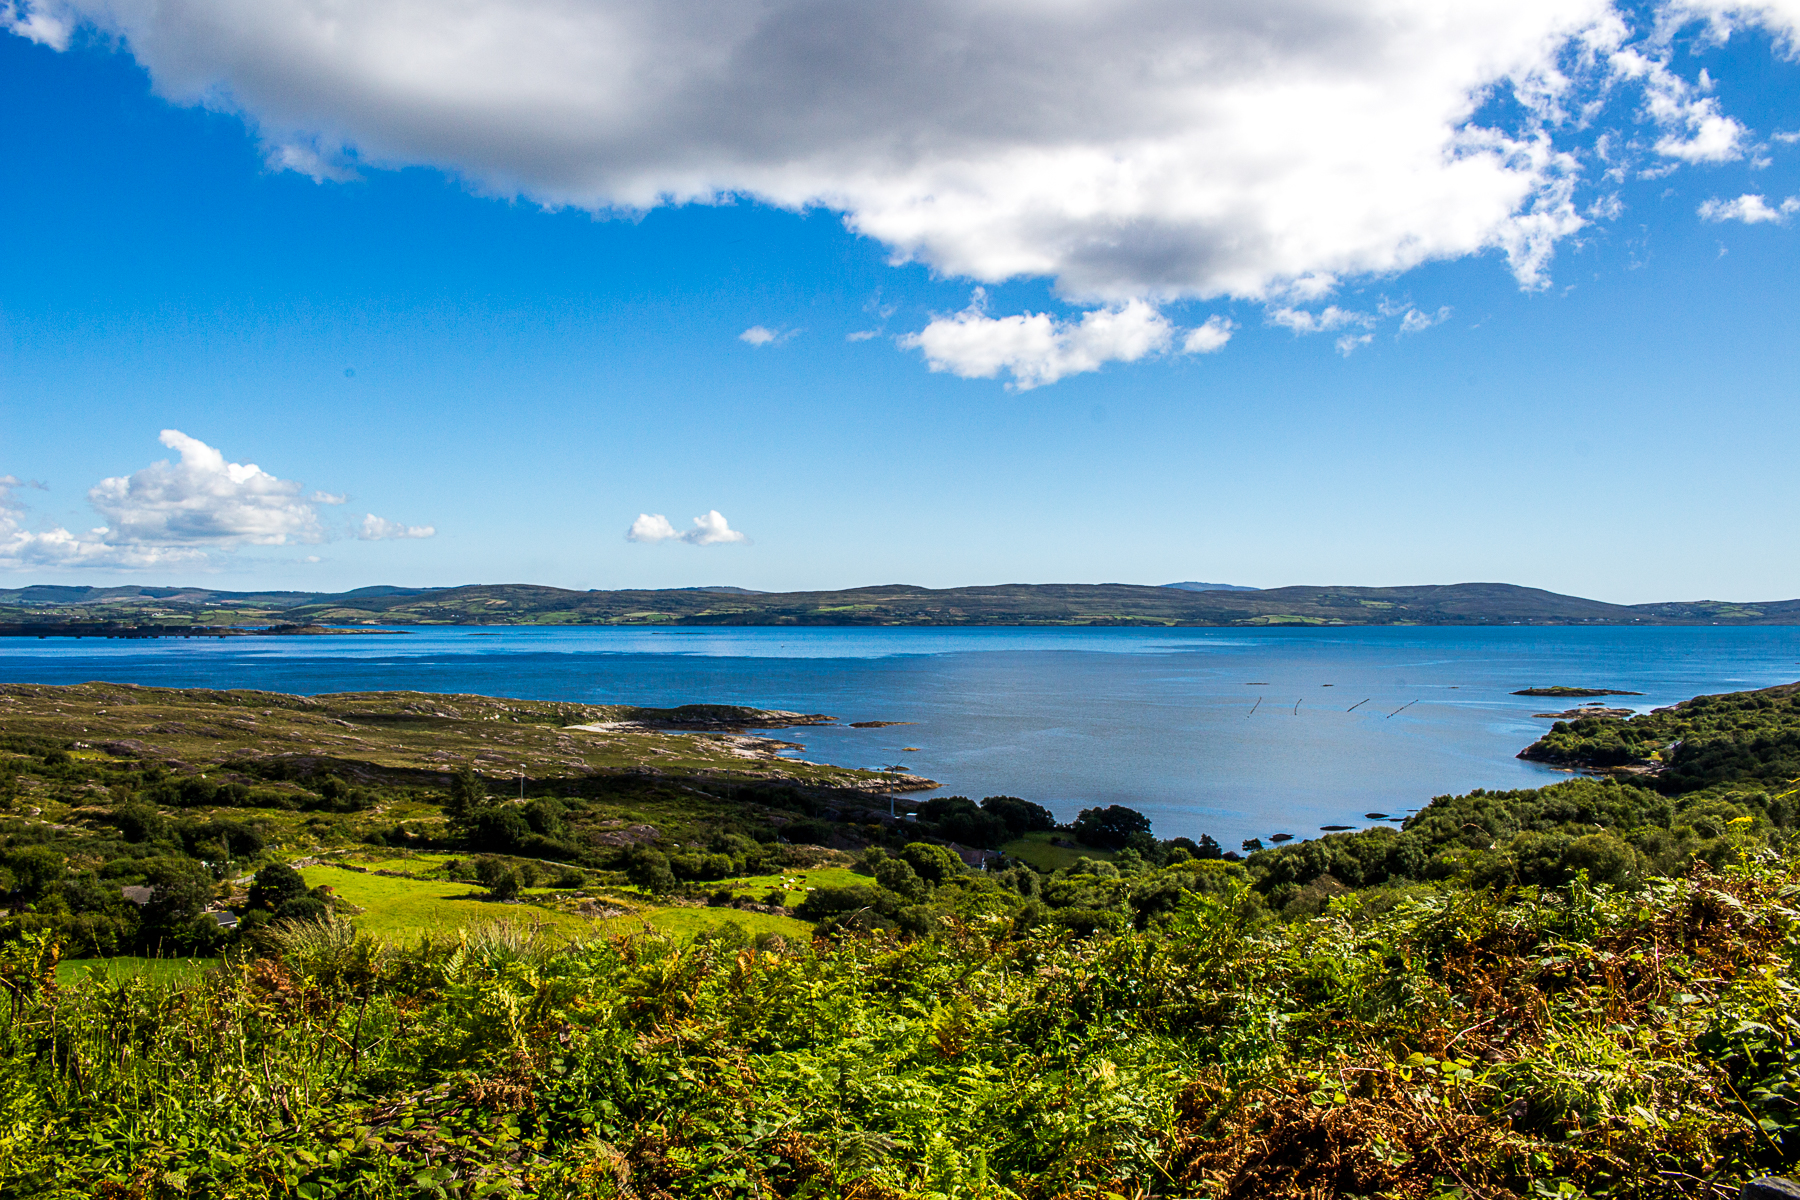 Bantry Bay, Cork, West Cork, Ireland